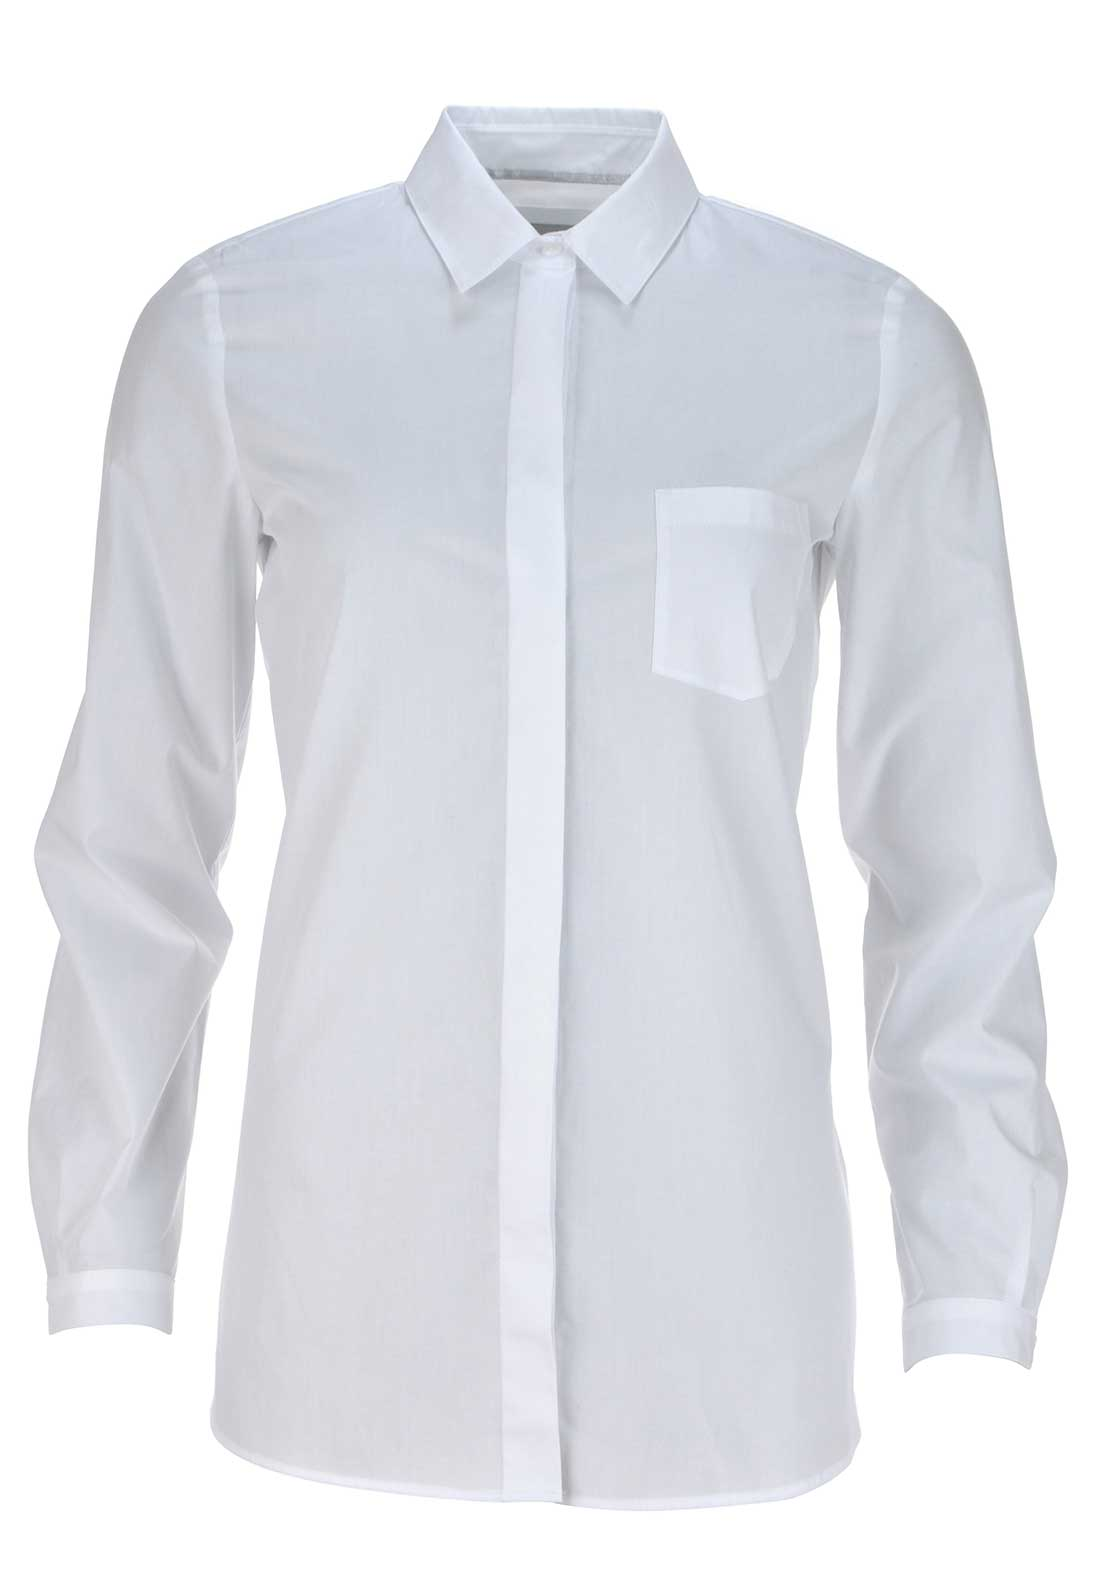 Gerry Weber Concealed Button Placket Long Sleeve Blouse, White